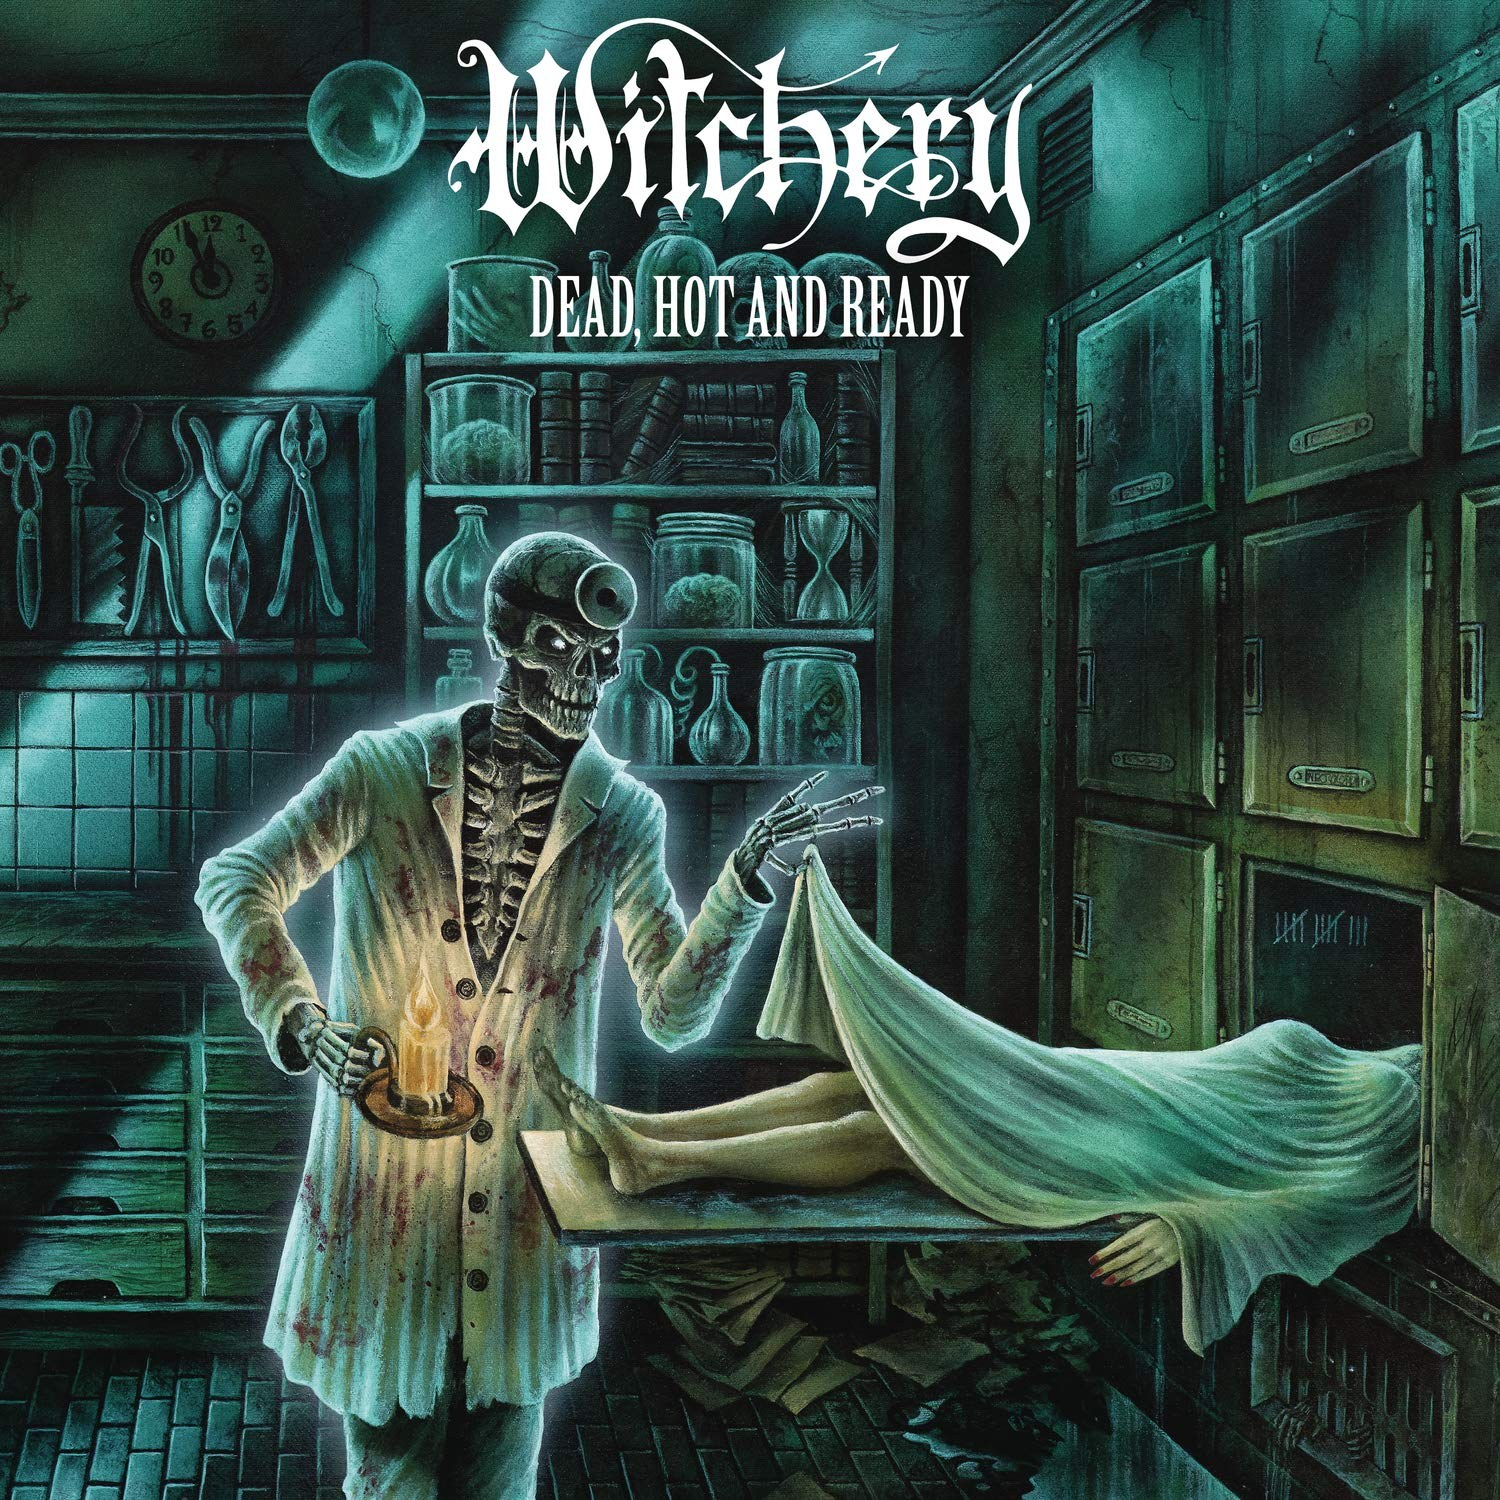 Review for Witchery - Dead, Hot and Ready